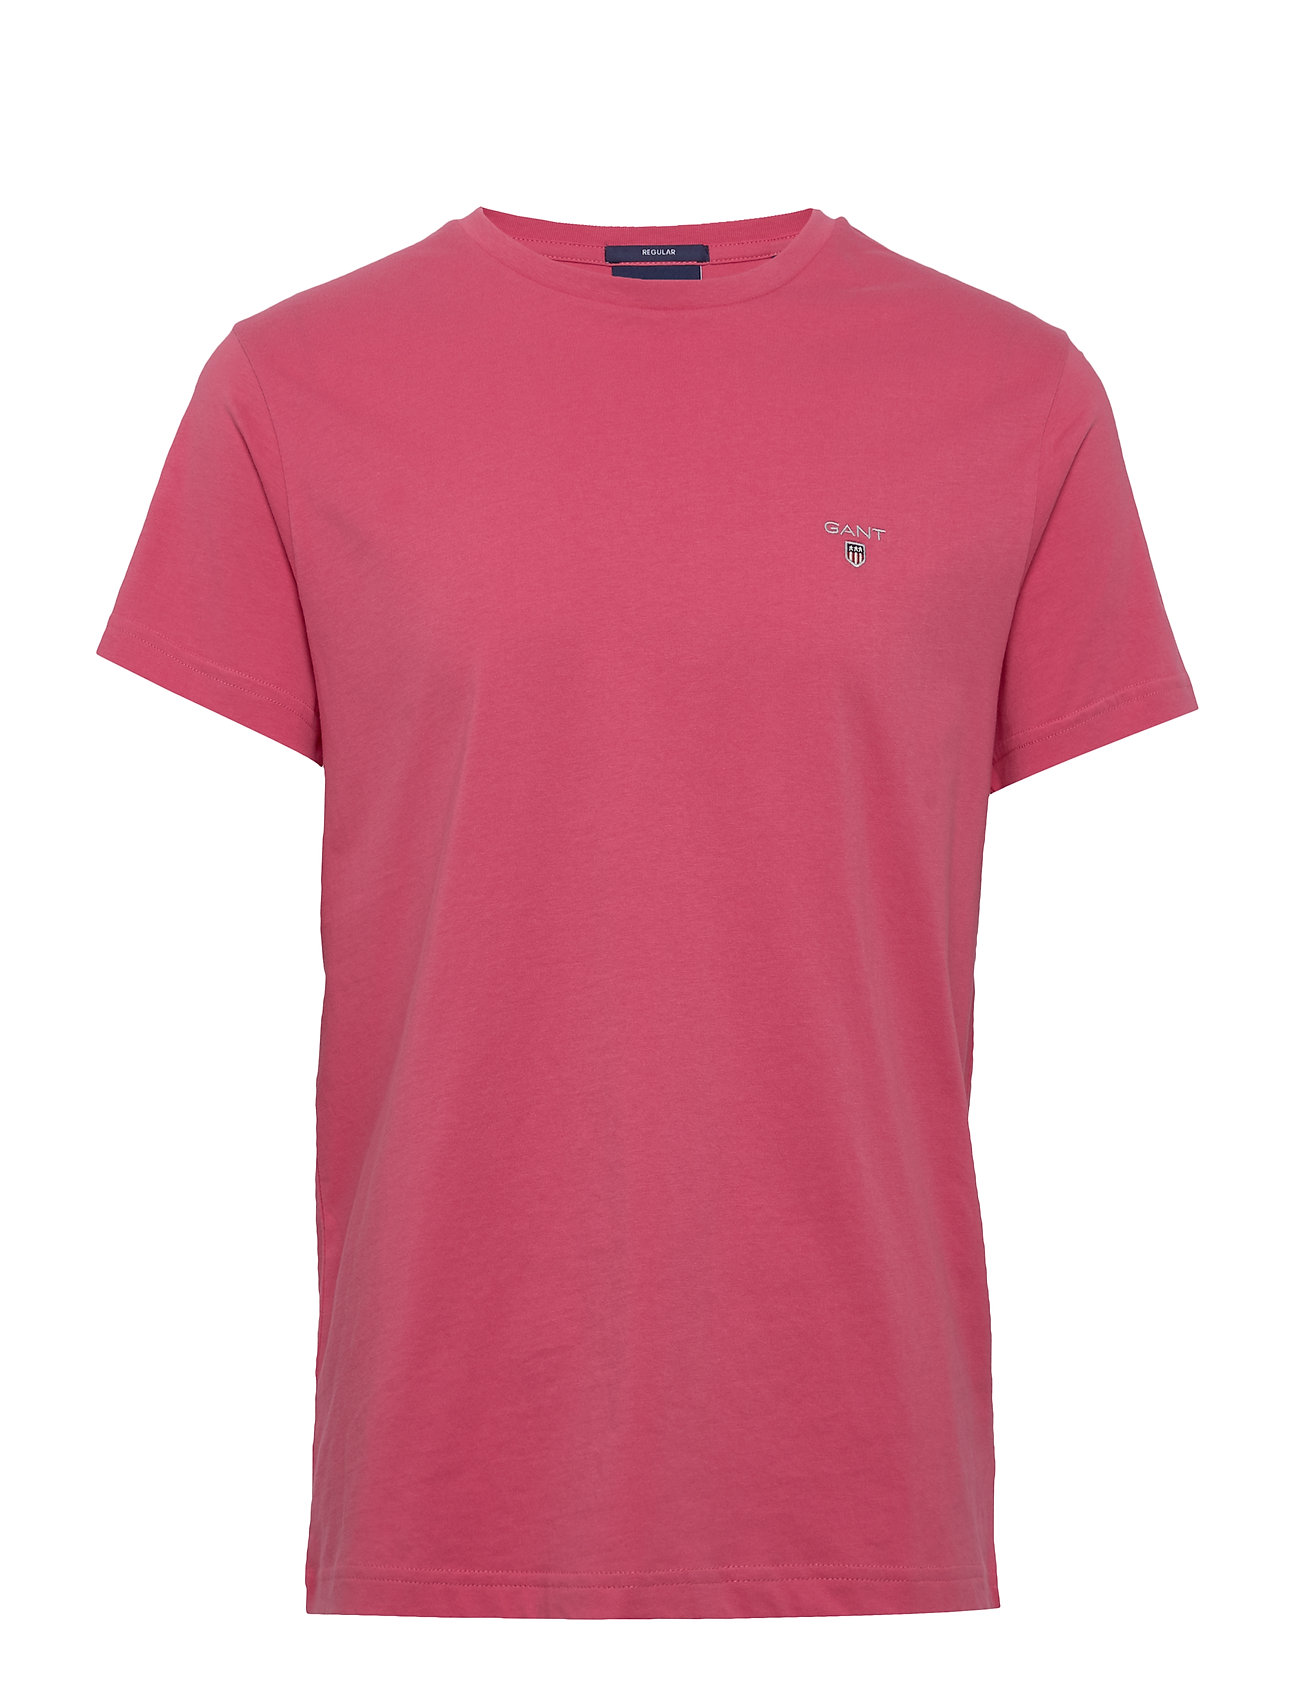 Gant ORIGINAL SS T-SHIRT - RAPTURE ROSE